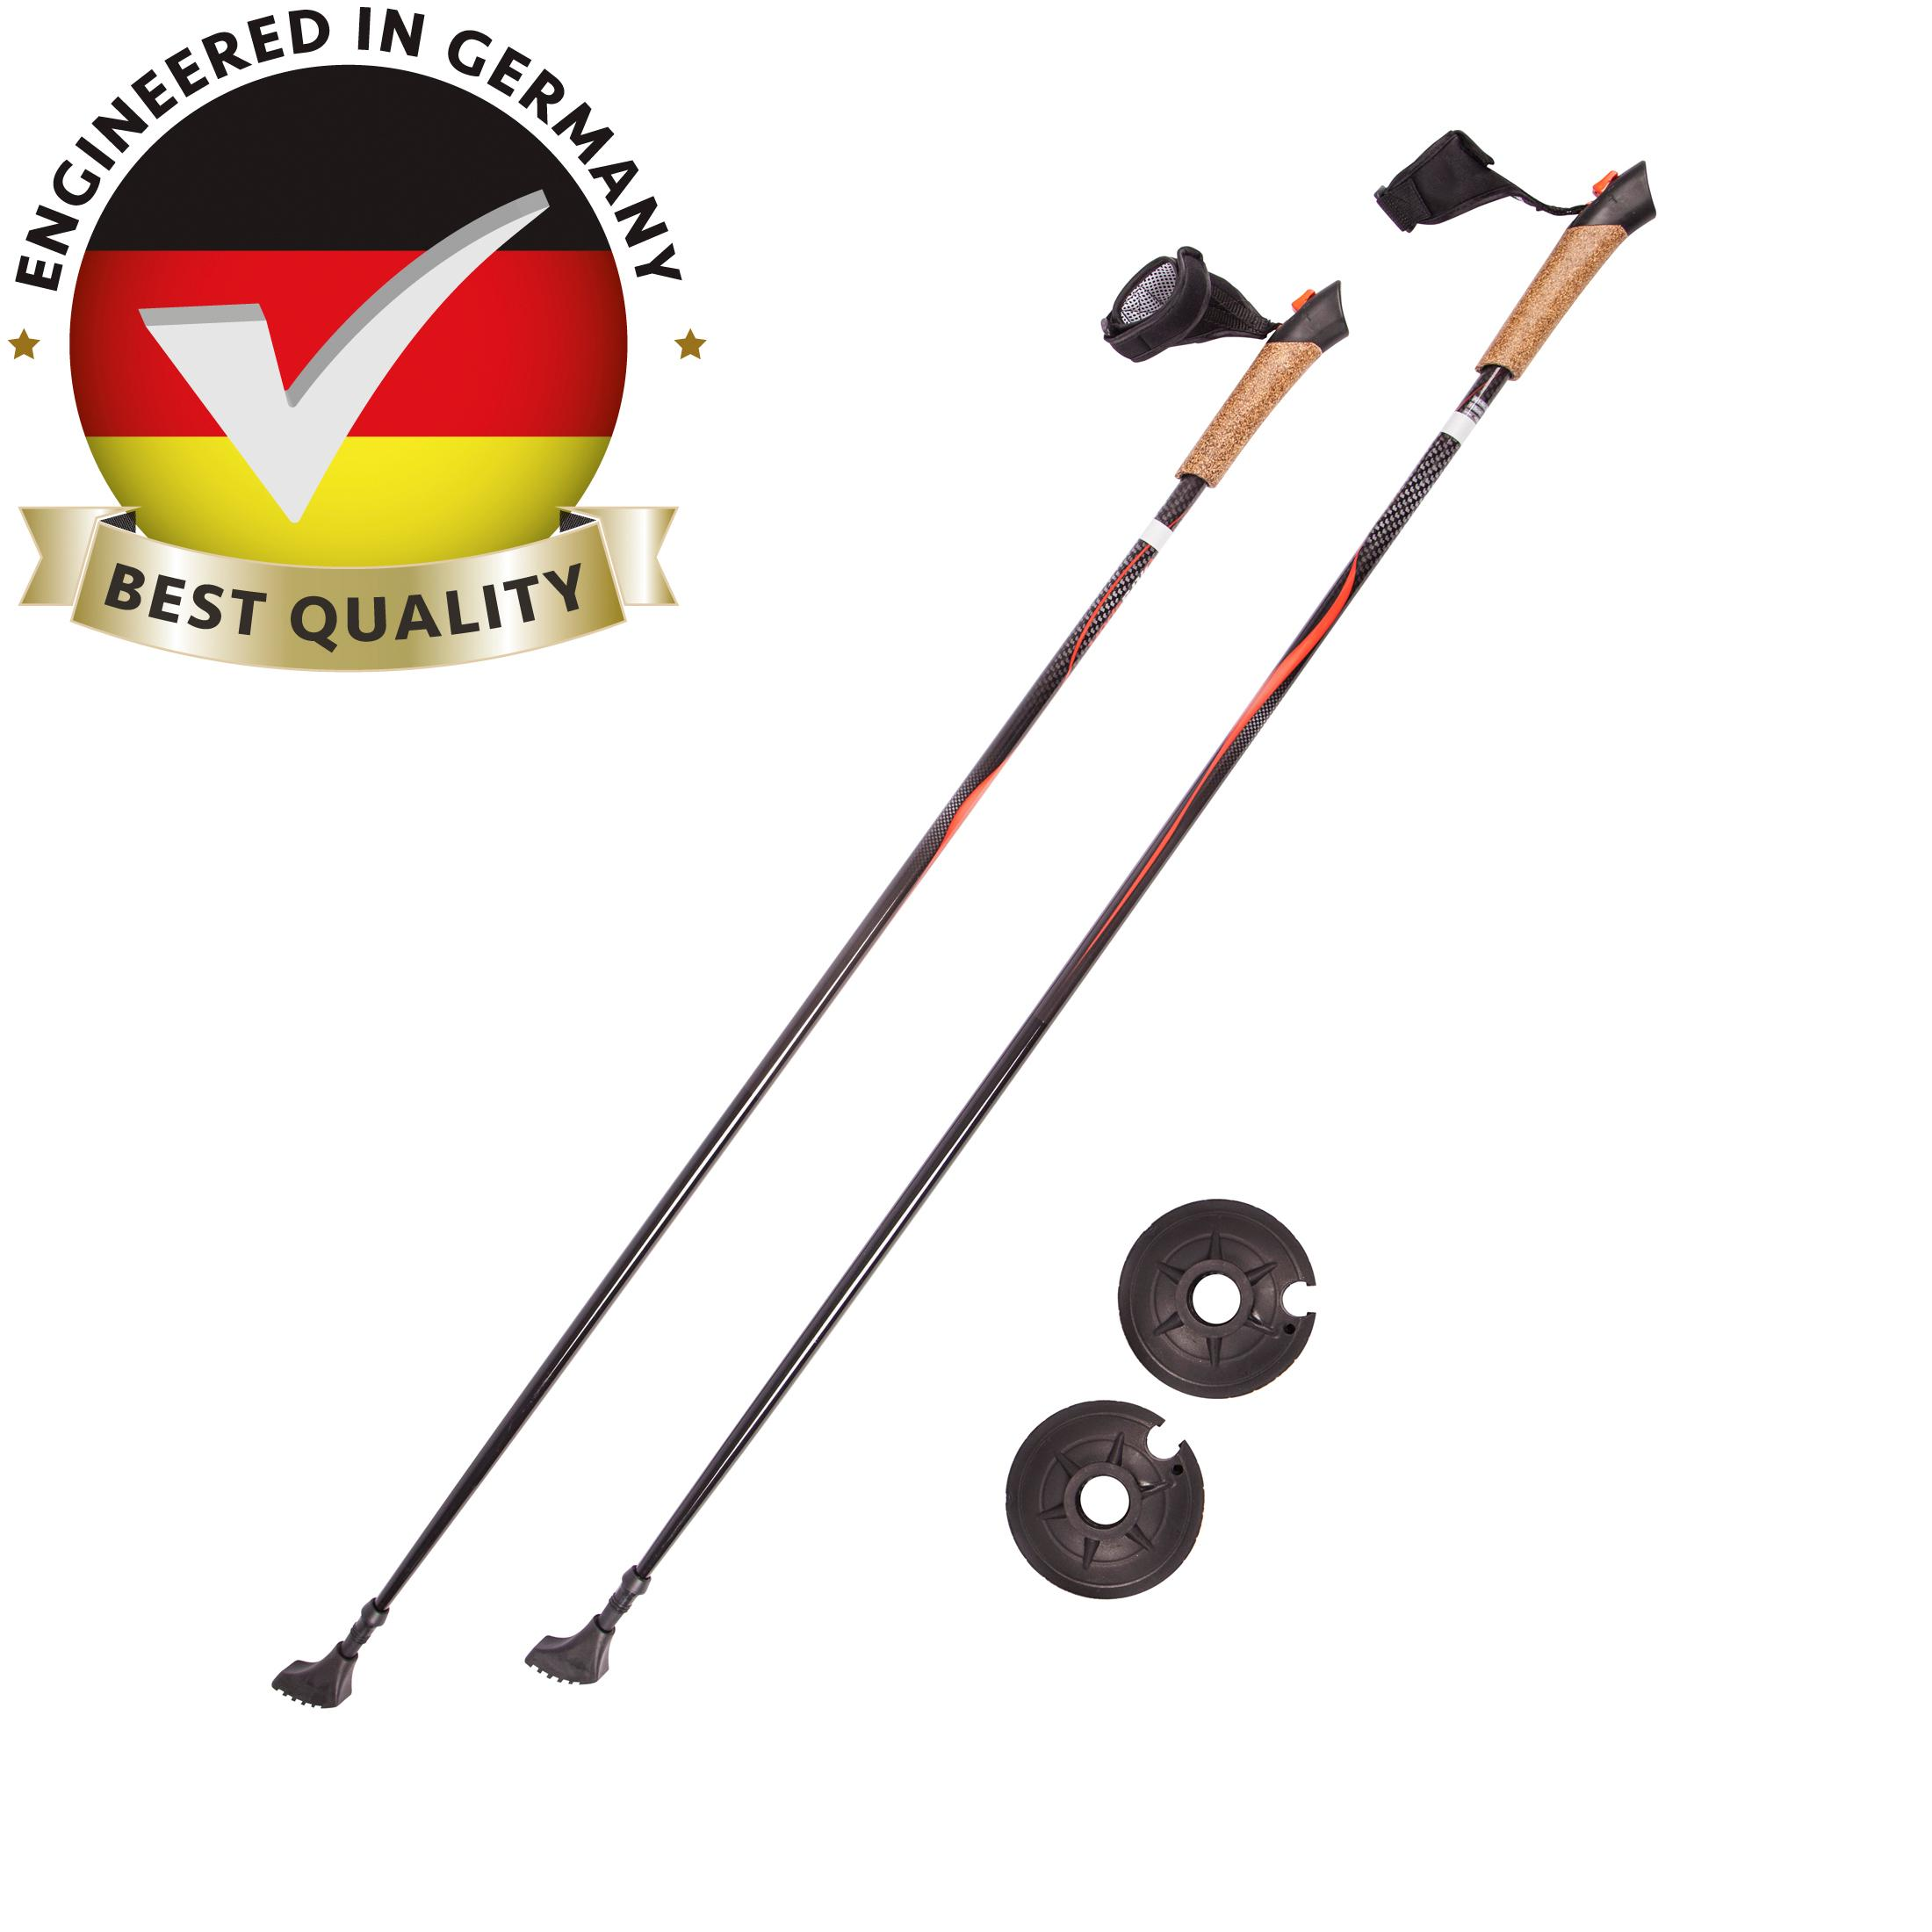 ultega carbon nordic walking poles sports. Black Bedroom Furniture Sets. Home Design Ideas